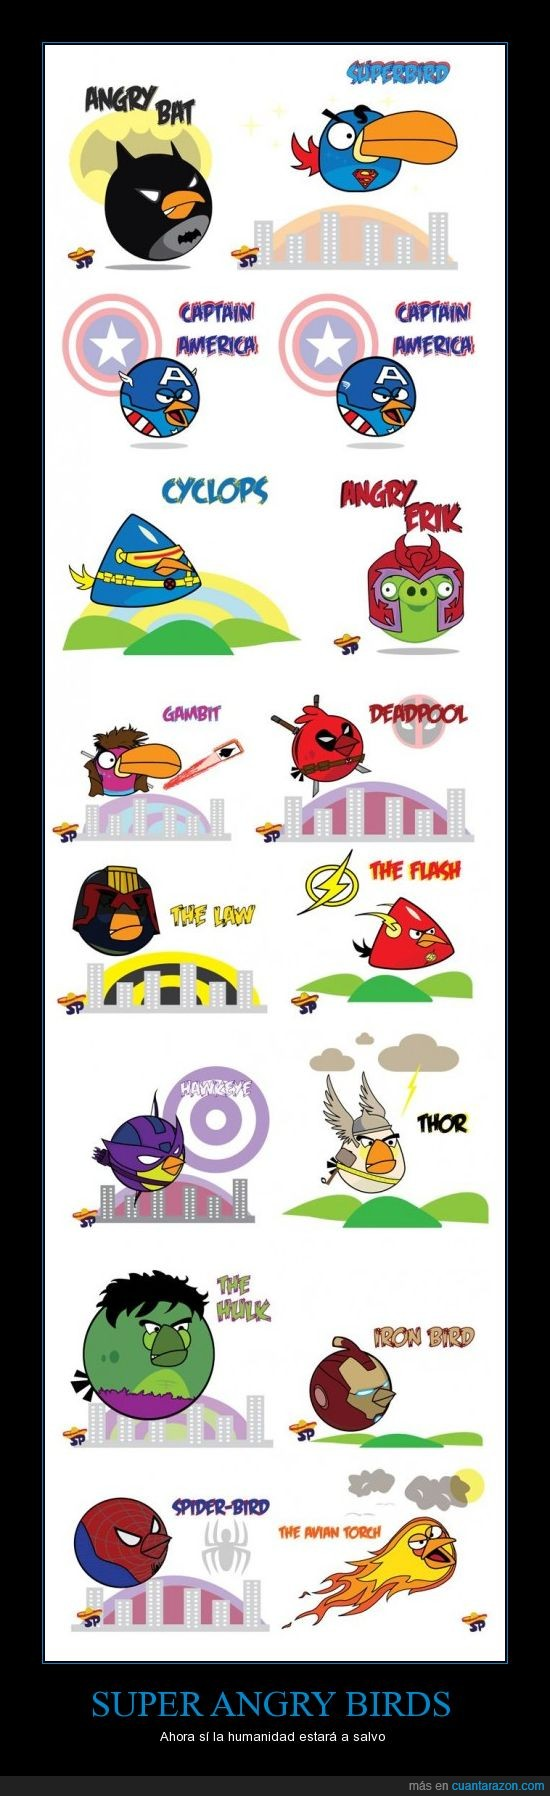 angry,angry birds,birds,heroes,marvel,super